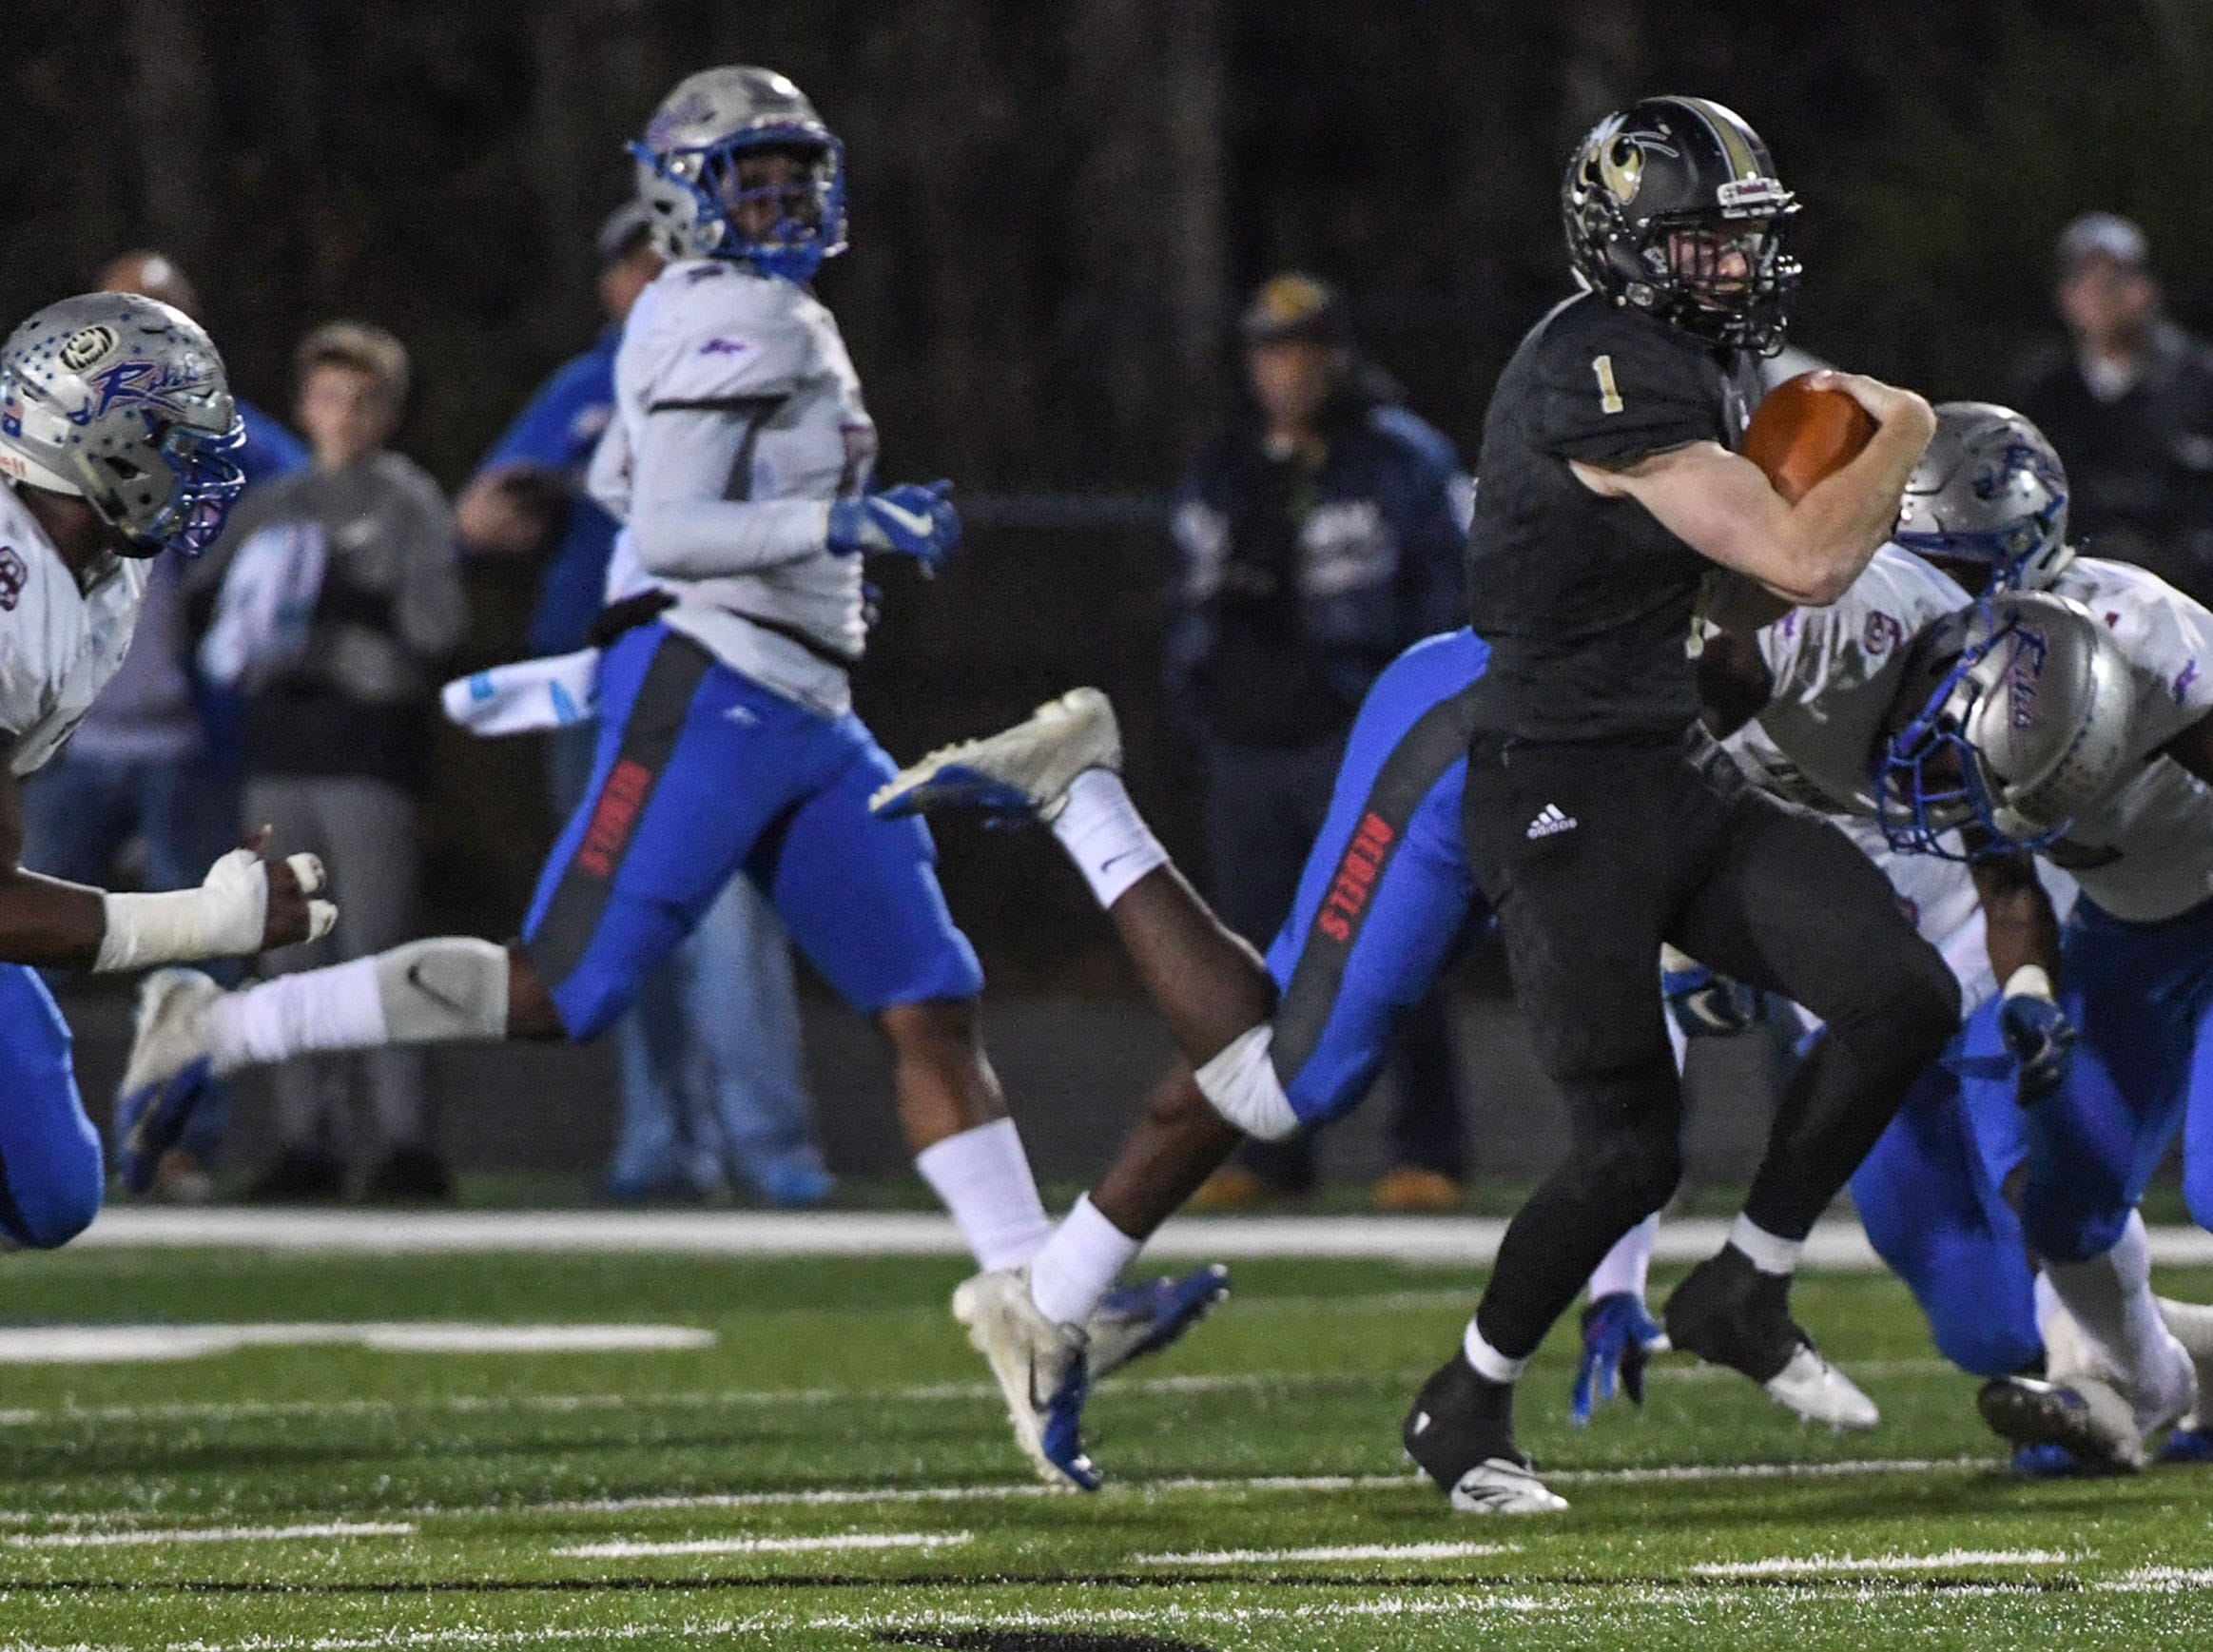 TL Hanna senior Alex Meredith (1) runs against Byrnes High School during the first quarter of the Class AAAAA state playoffs at TL Hanna High School in Anderson on Friday, November 30, 2018.